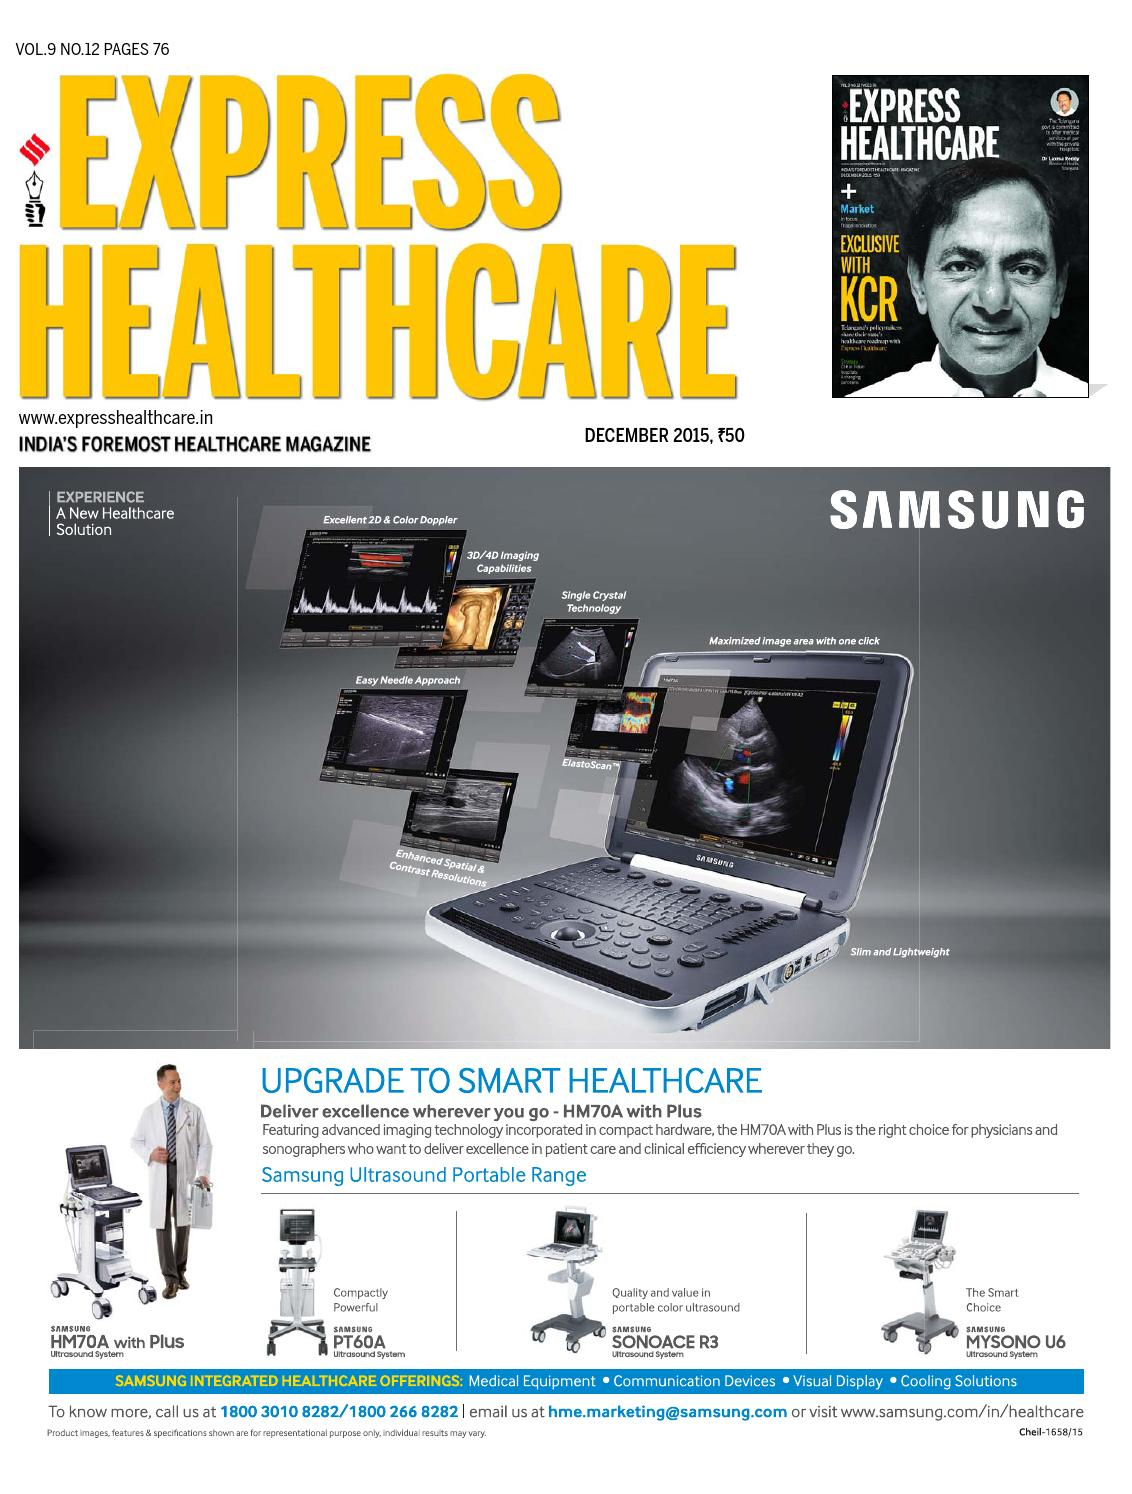 Express Healthcare (Vol 9, No 12) December, 2015 by Indian